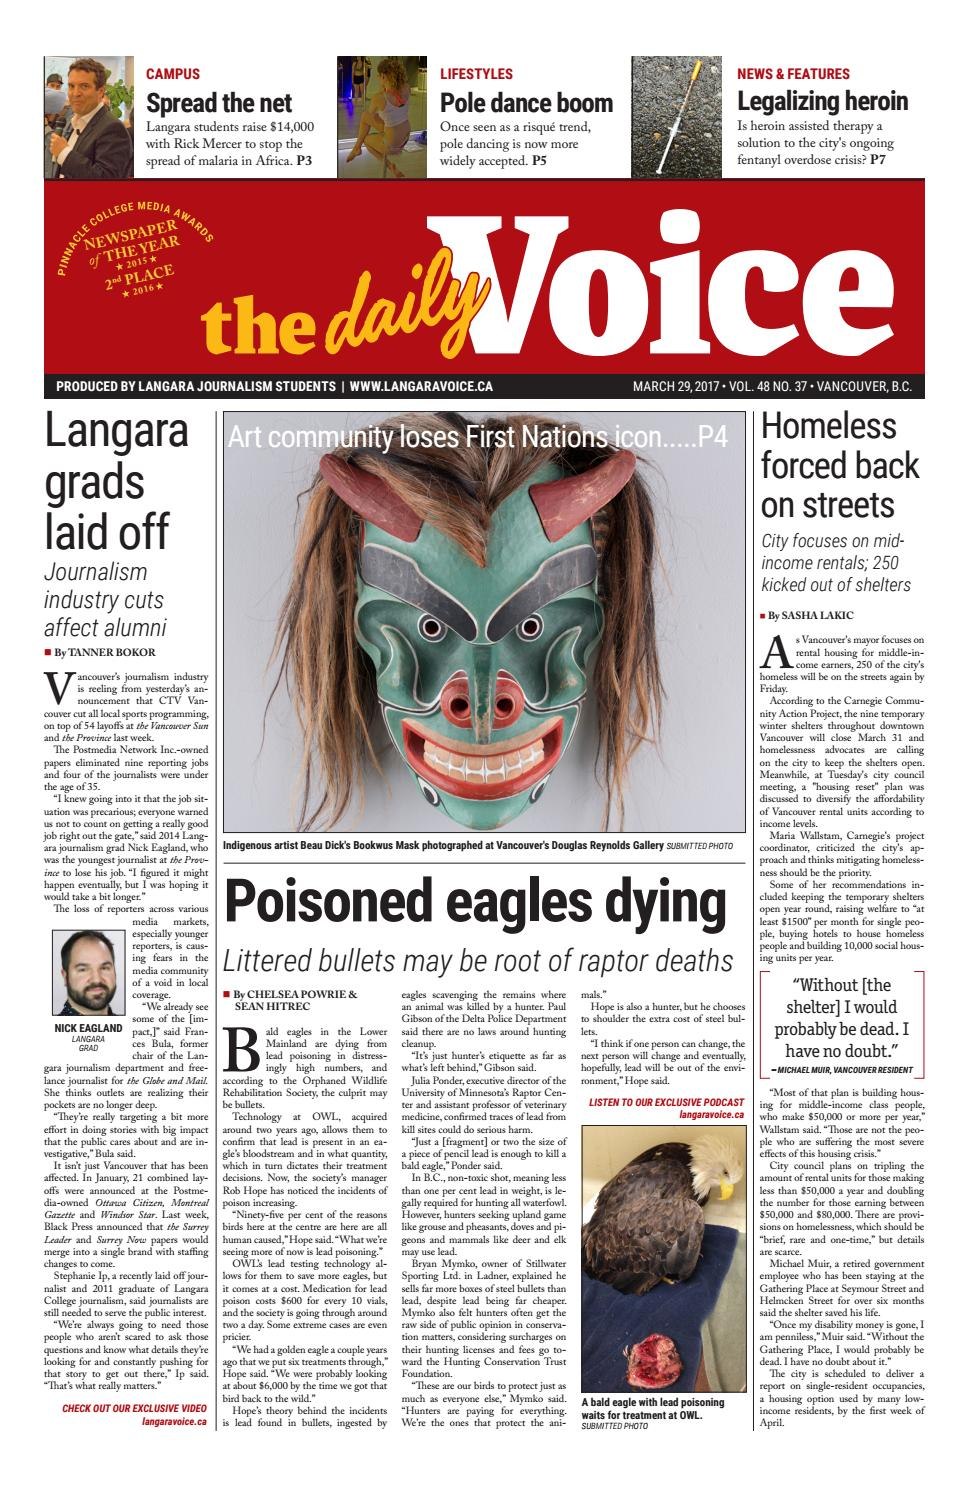 Voice 03 29 17 by Langara Journalism - issuu